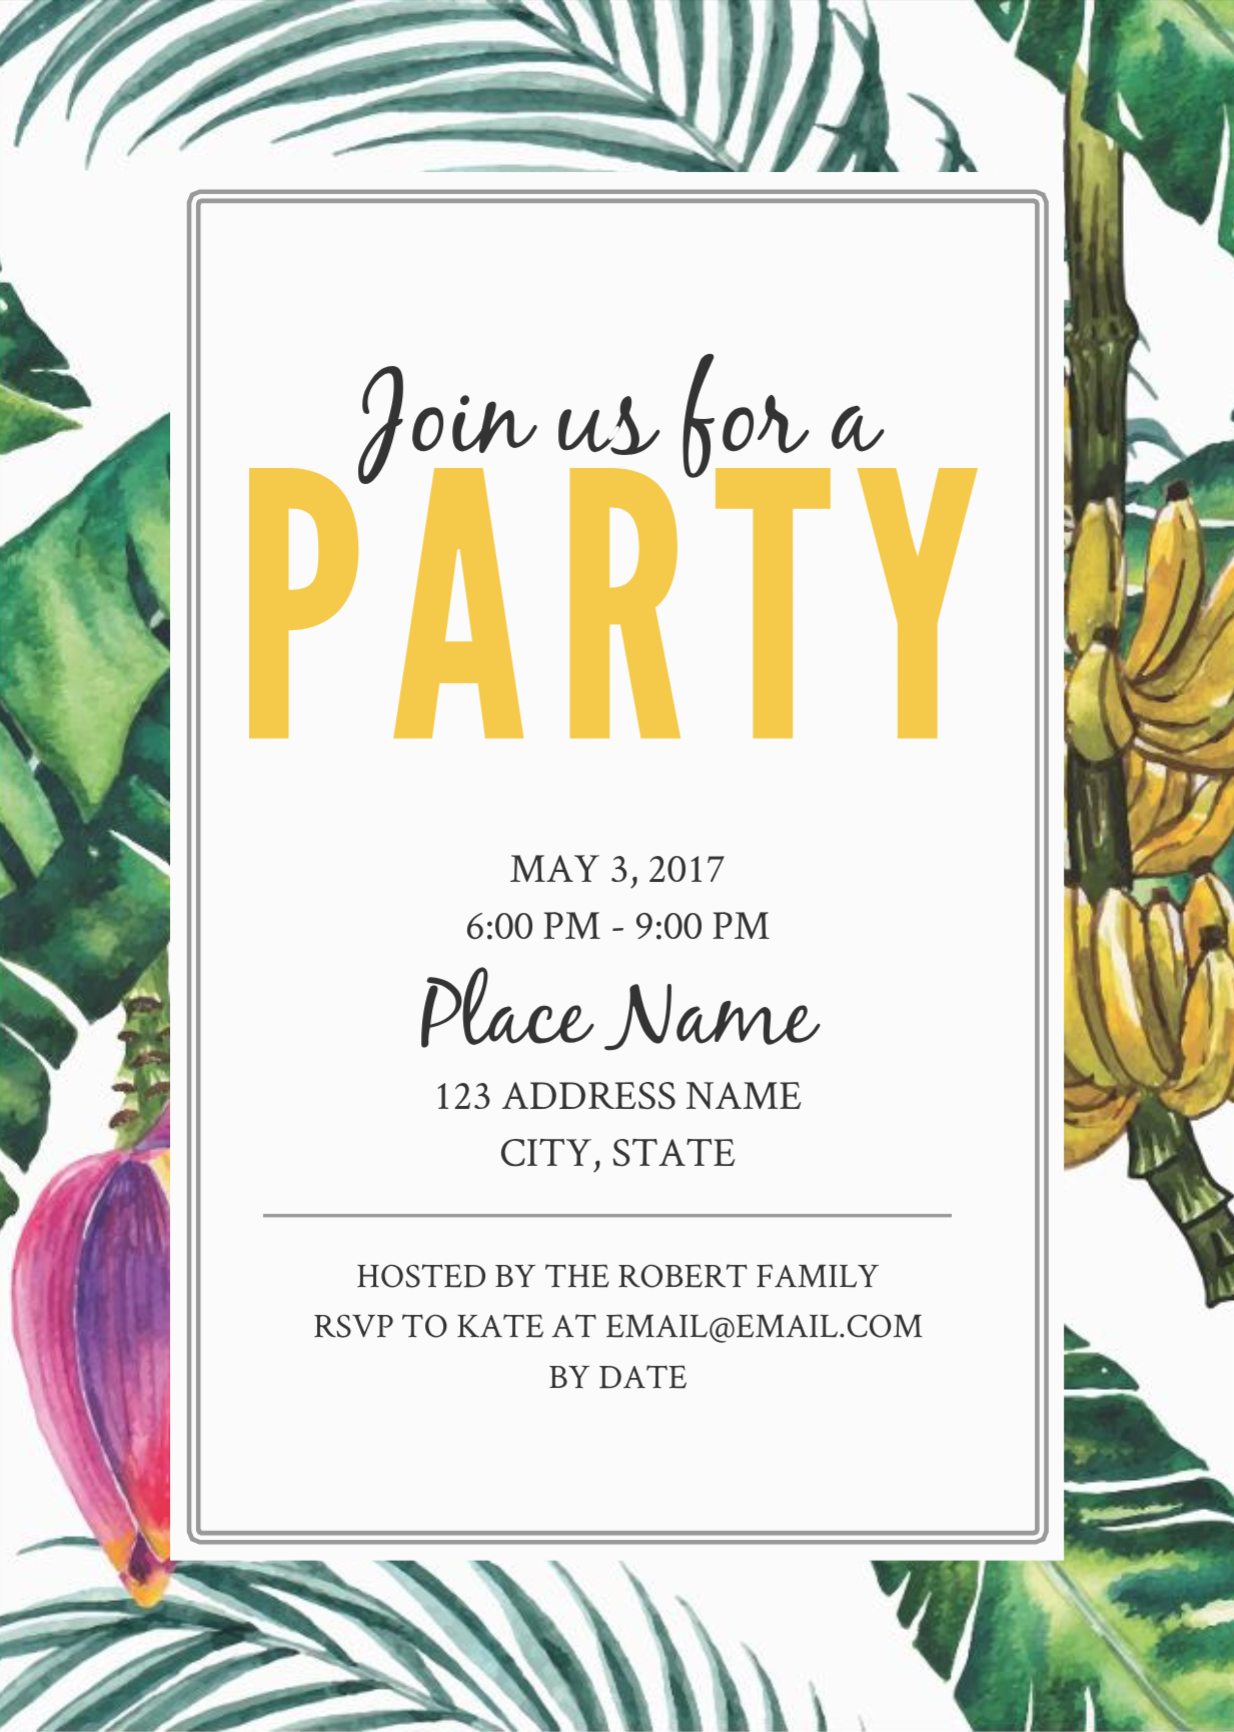 Jungle Party Birthday Invitation Template Free Party Invitation Templates Birthday Invitation Card Template Free Party Invitations